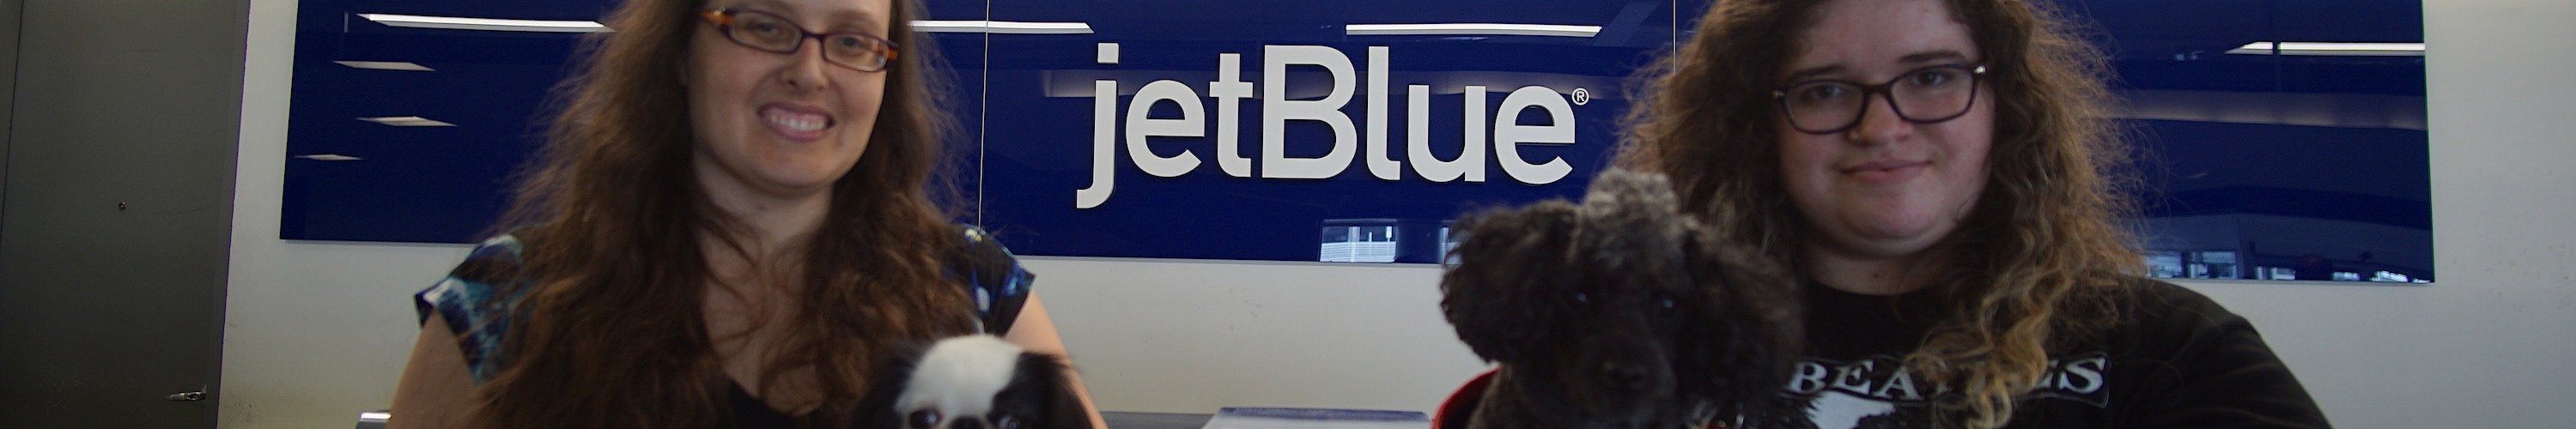 Veronica holding Hestia, and Scarlet holding Gigi in front of a JetBlue sign